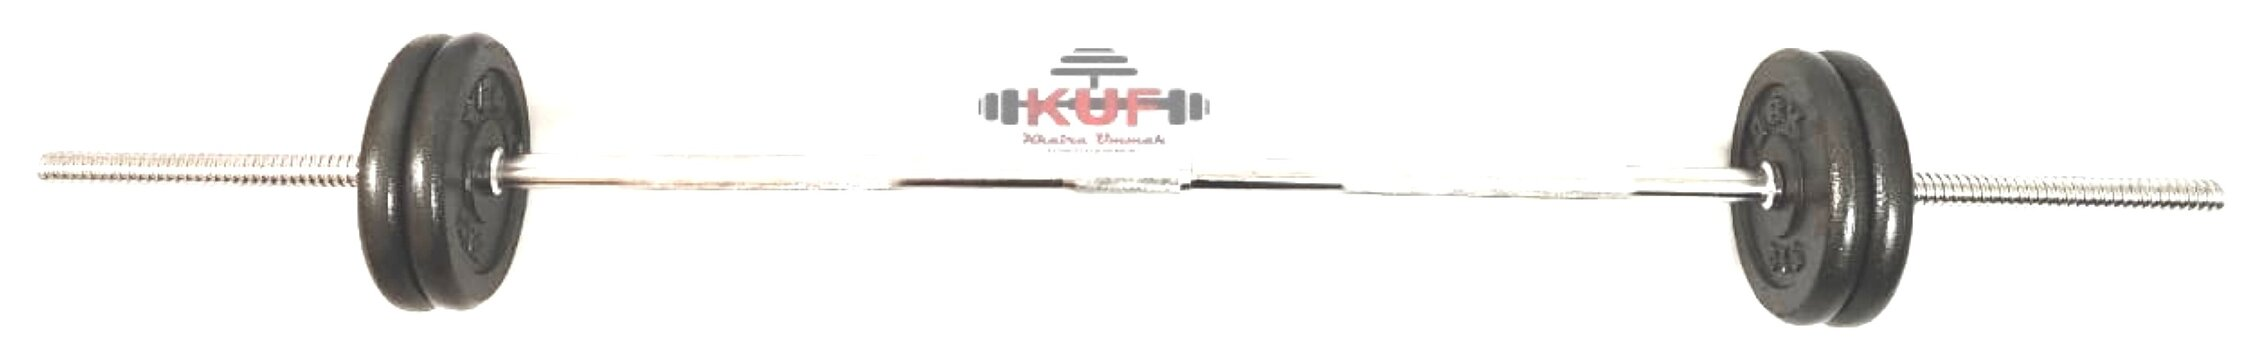 50KG iron cast long bar with weights